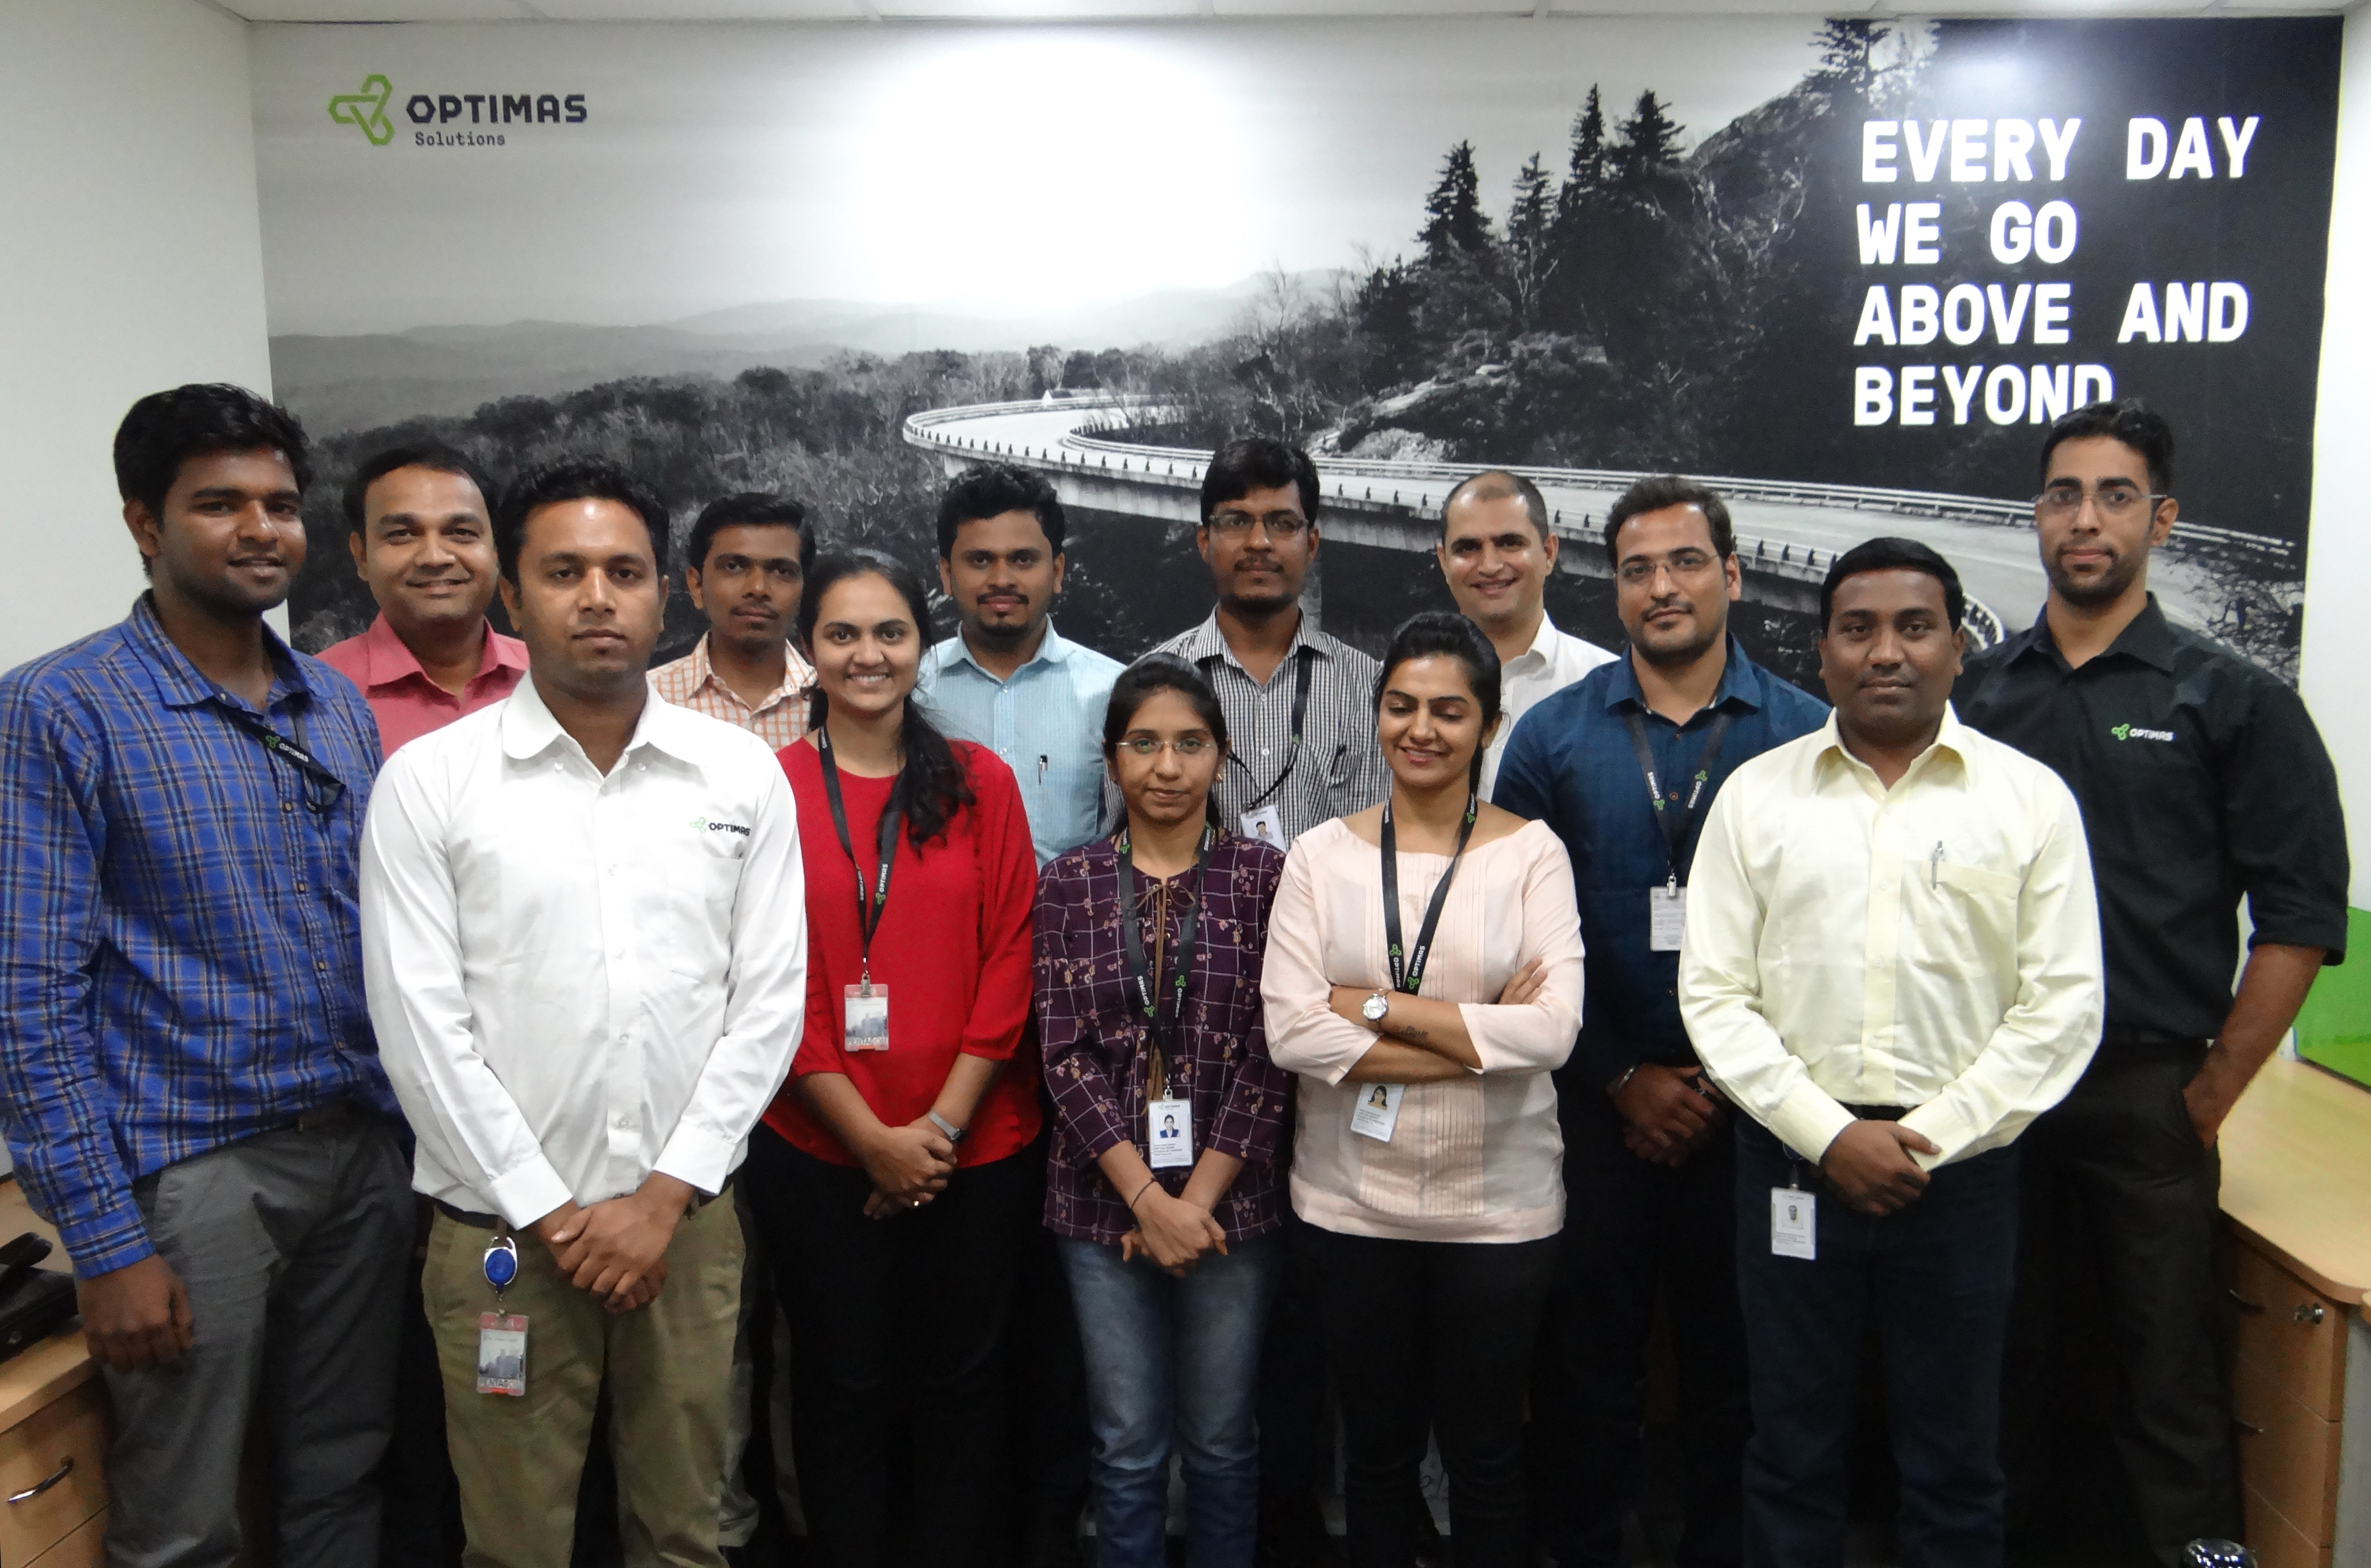 Global growth sees Optimas Solutions move into new India offices